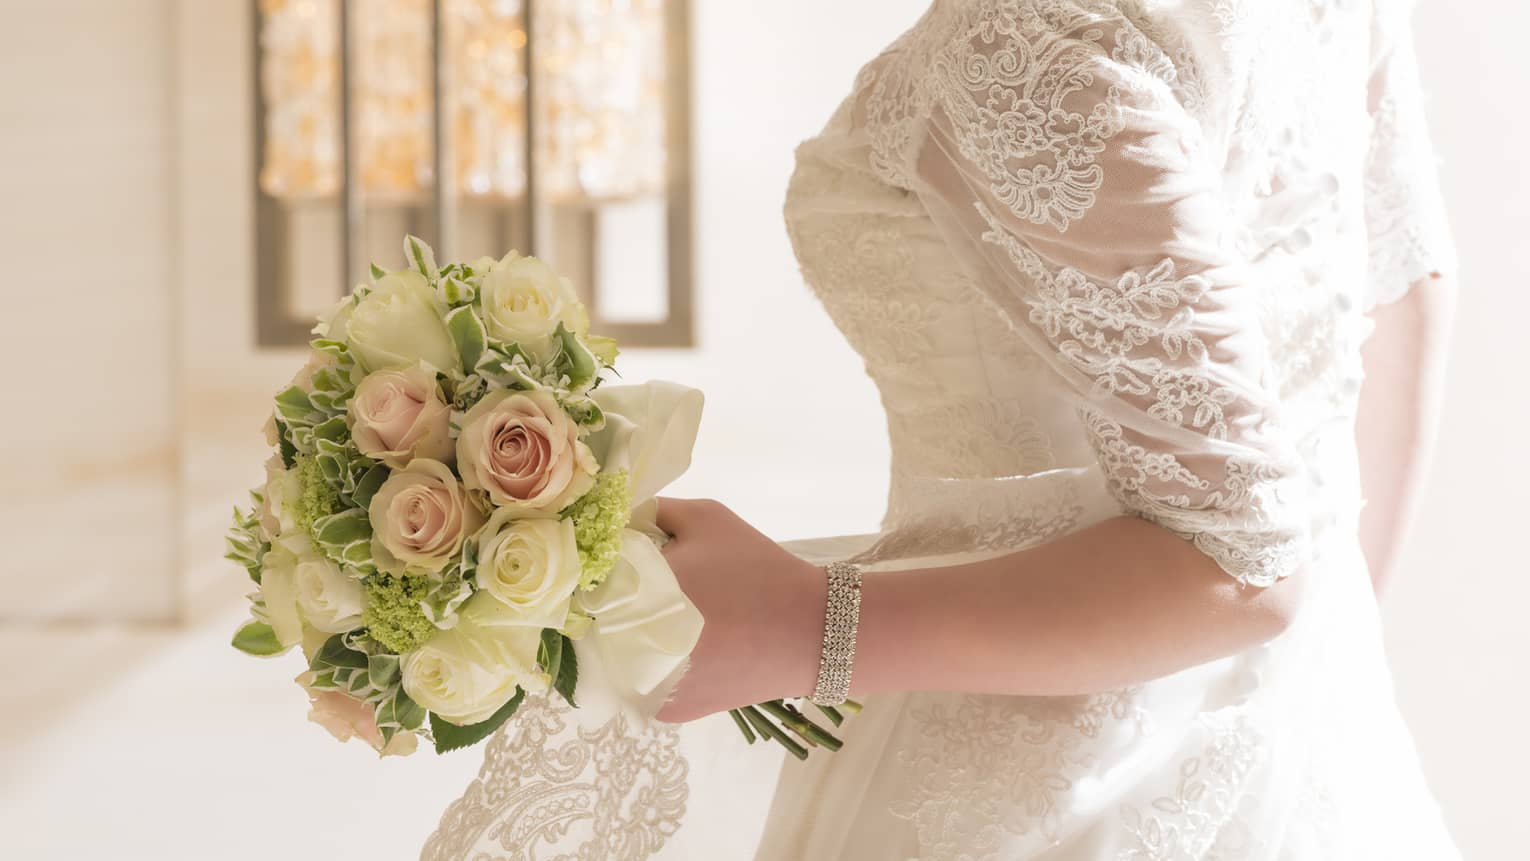 Bride wearing lace wedding gown stands by sunny window, looks down at rose bouquet